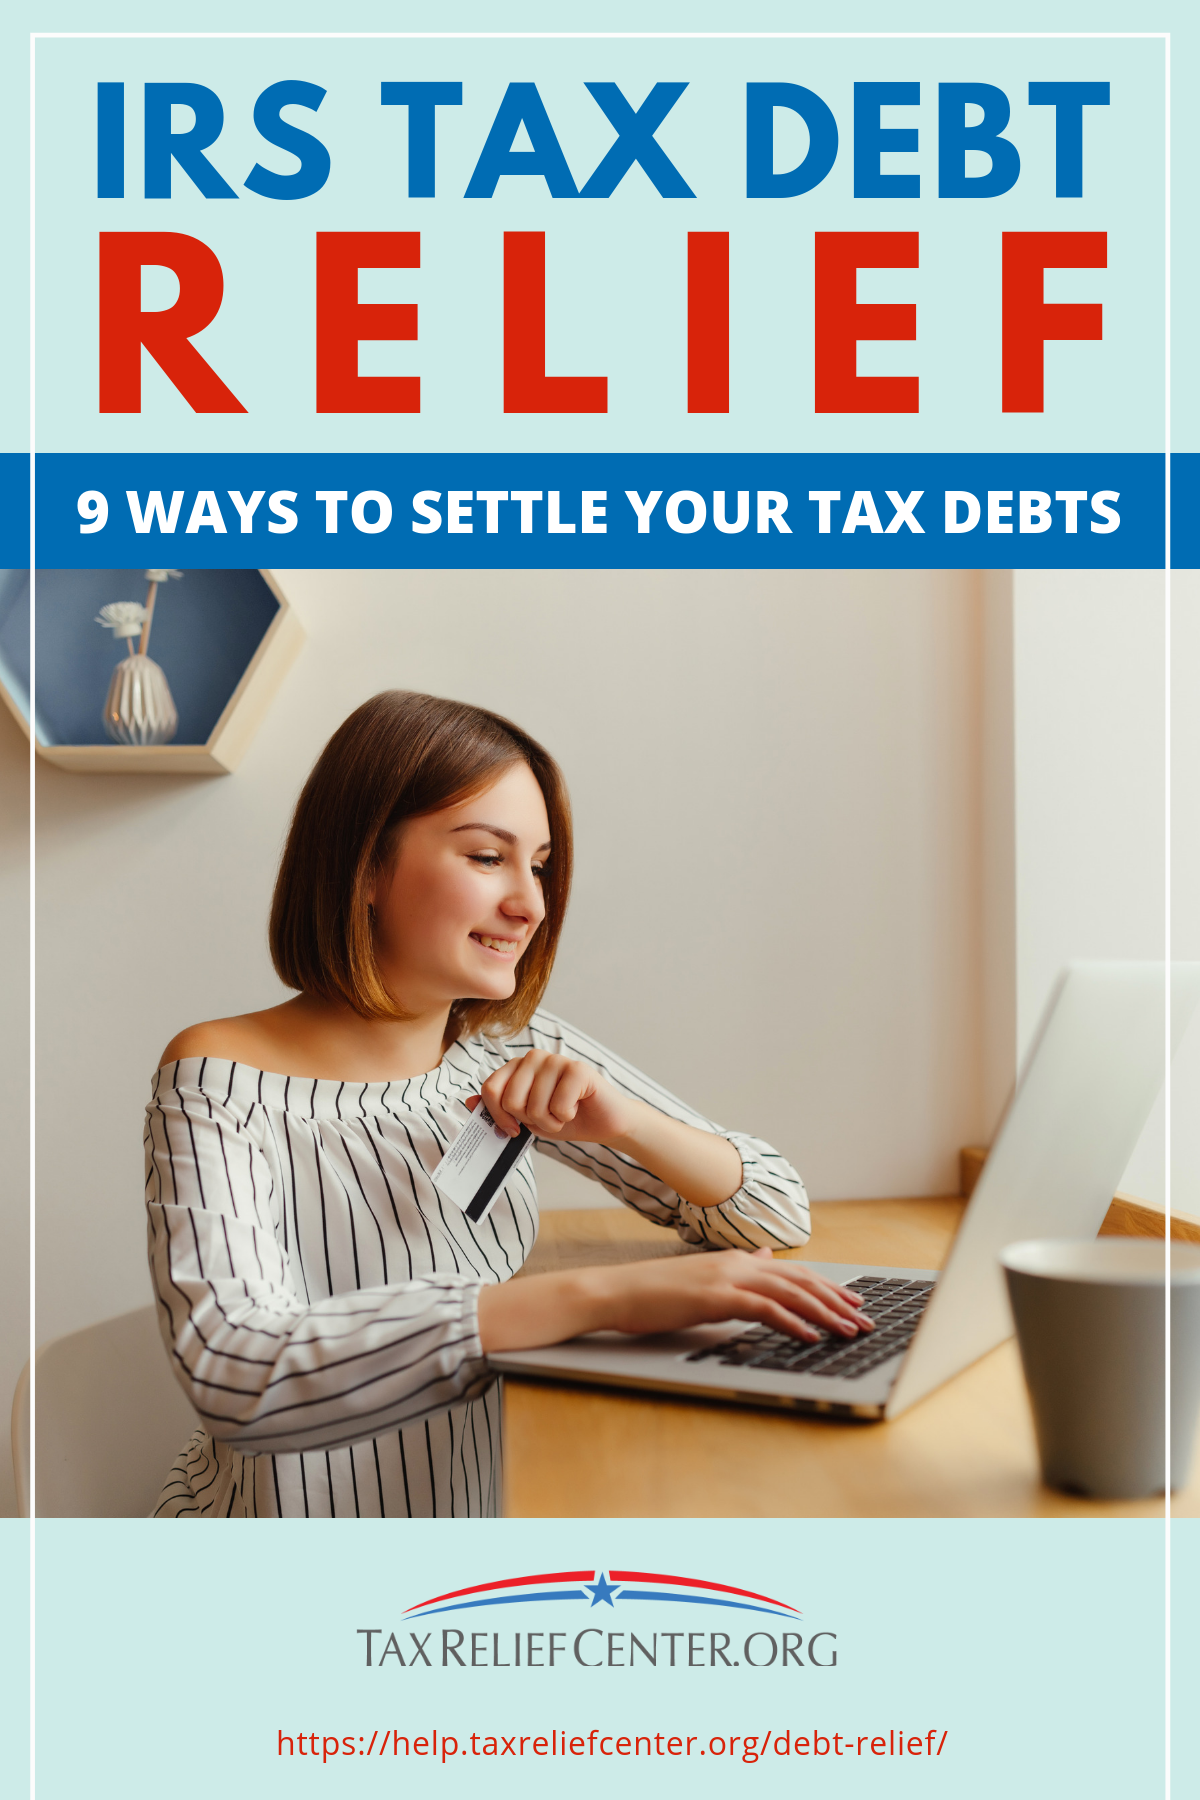 IRS Tax Debt Relief | 9 Ways To Settle Your Tax Debts https://help.taxreliefcenter.org/debt-relief/